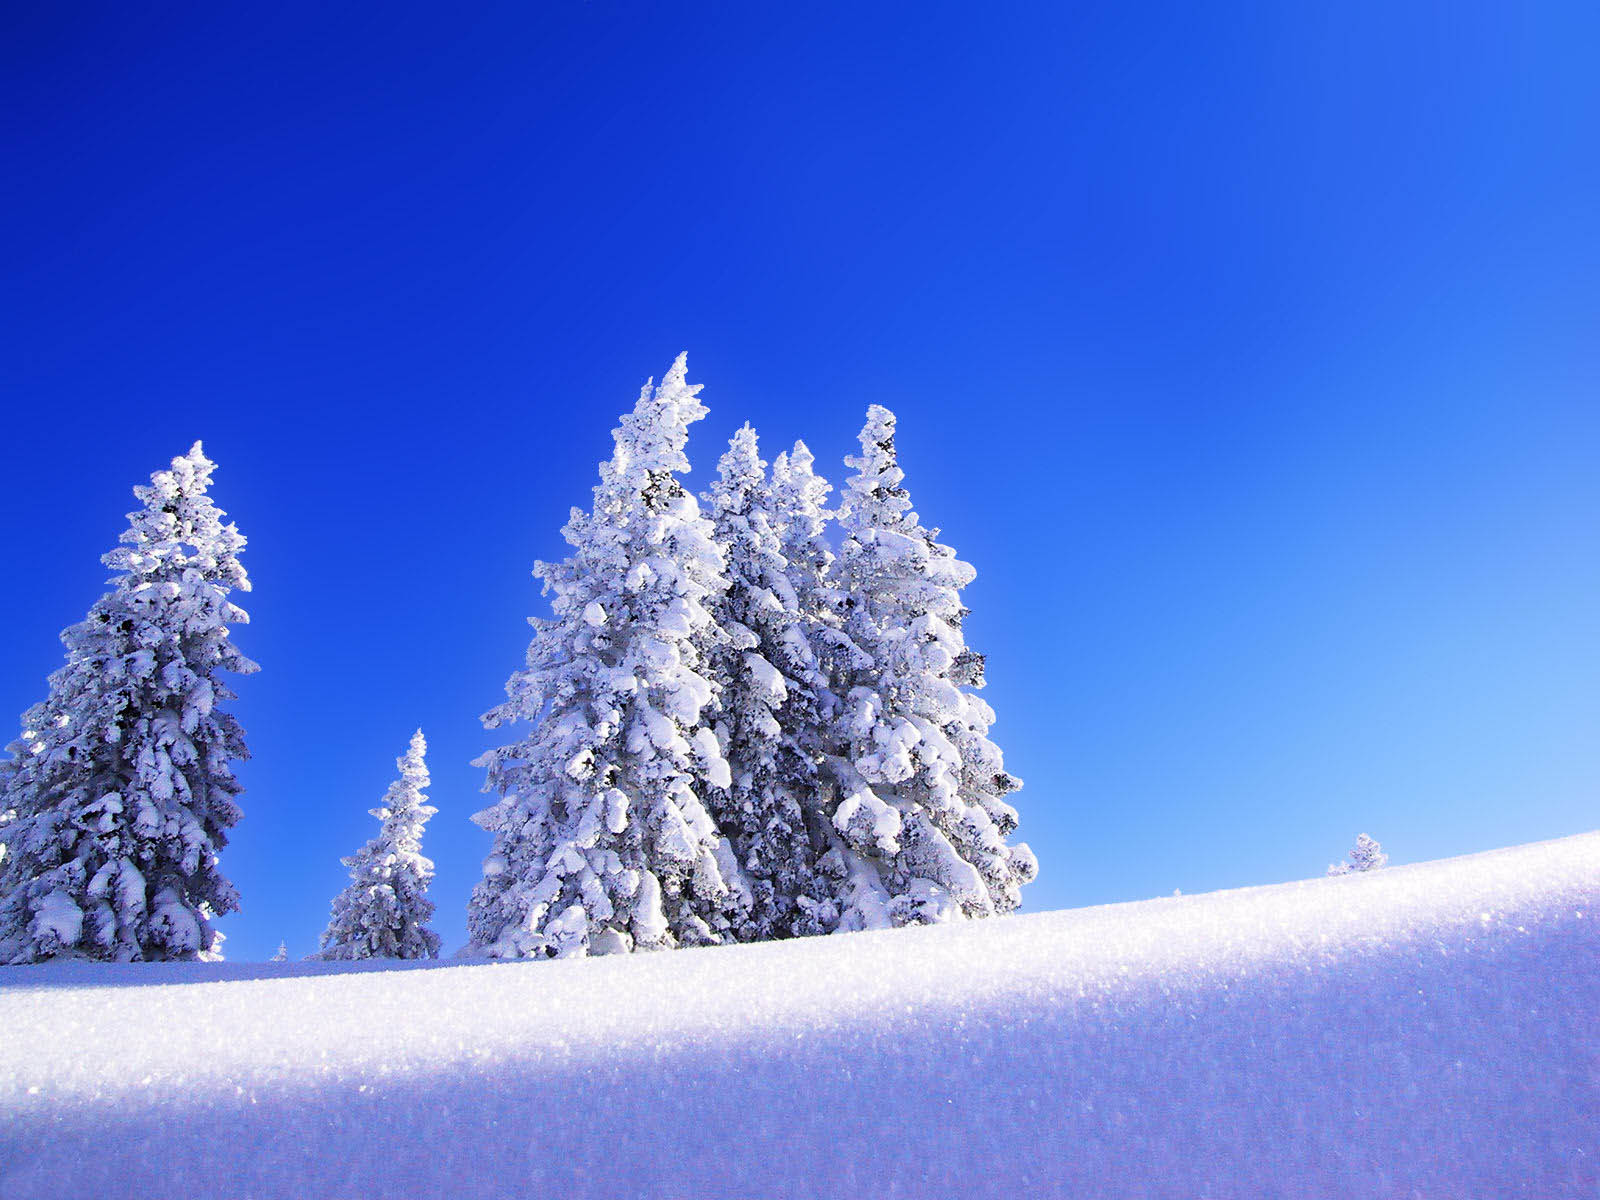 Tag Snow Wallpapers Backgrounds Photos Picturesand Images for 1600x1200